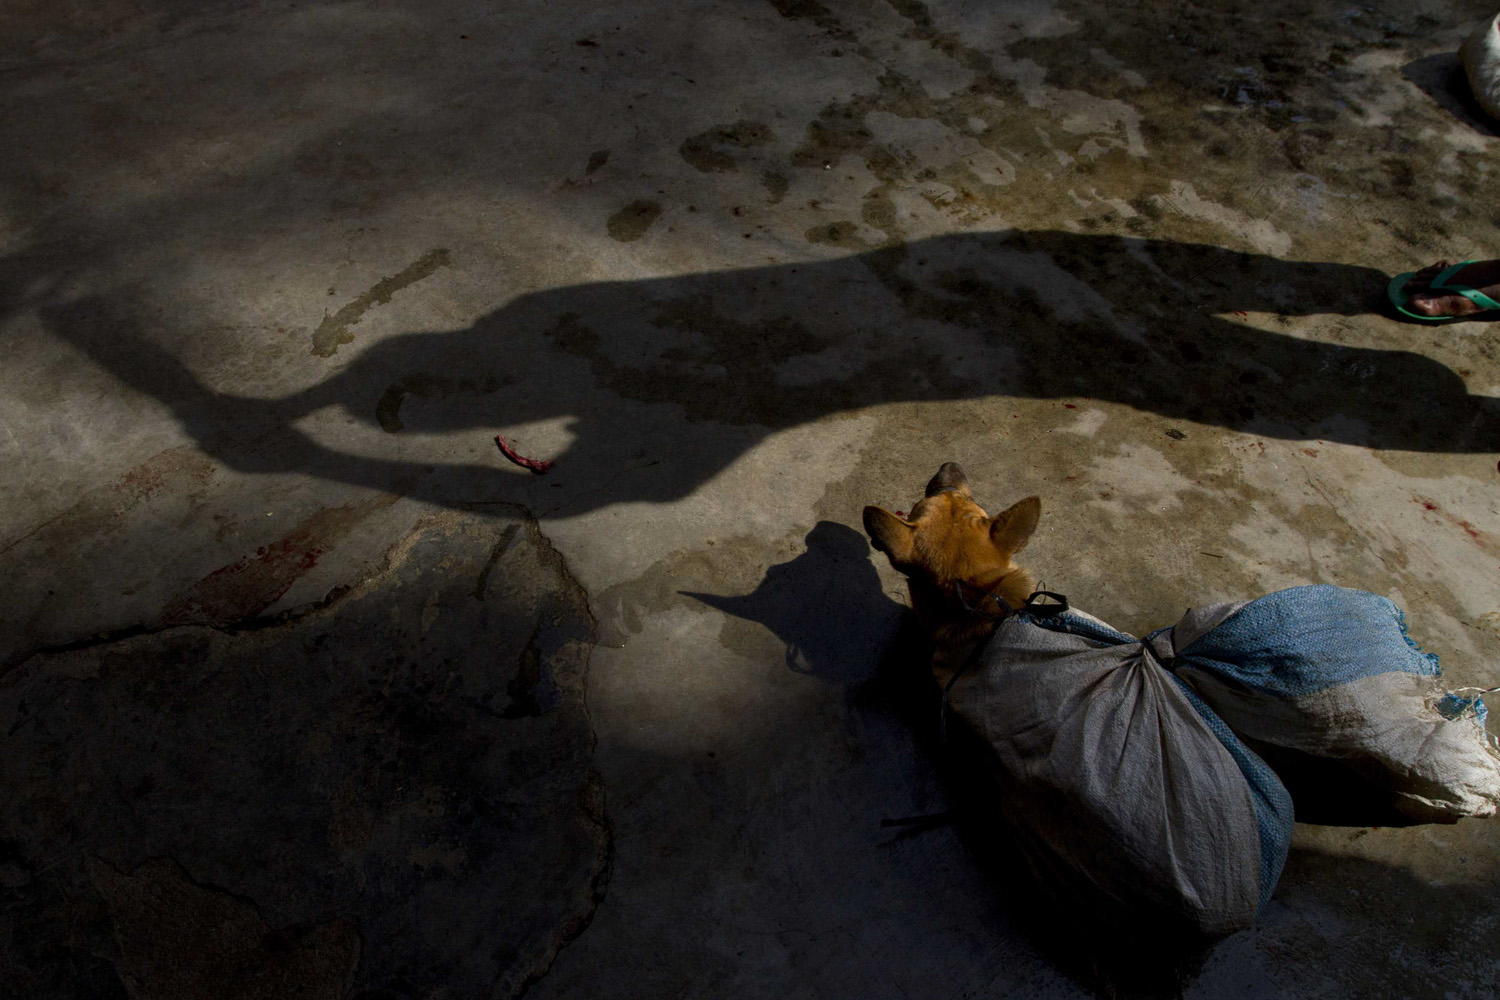 May 29, 2011. The shadow of a worker using a stick to club a dog before slaughter is seen, at Bambanglipuro village in Bantul, near the Indonesian city of Yogyakarta.